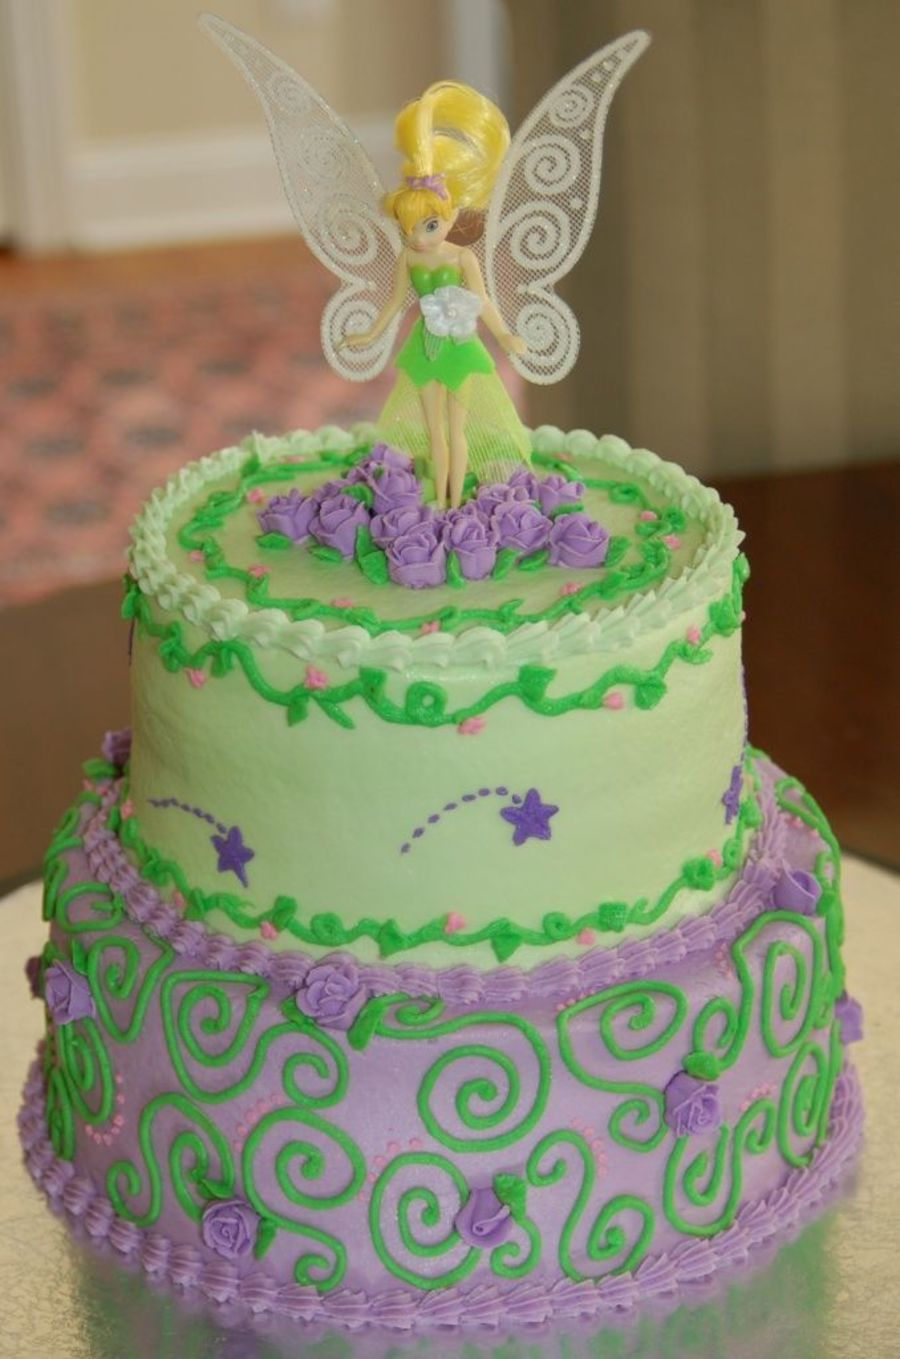 A twotiered baby shower cake w/ Tinkerbell theme. All